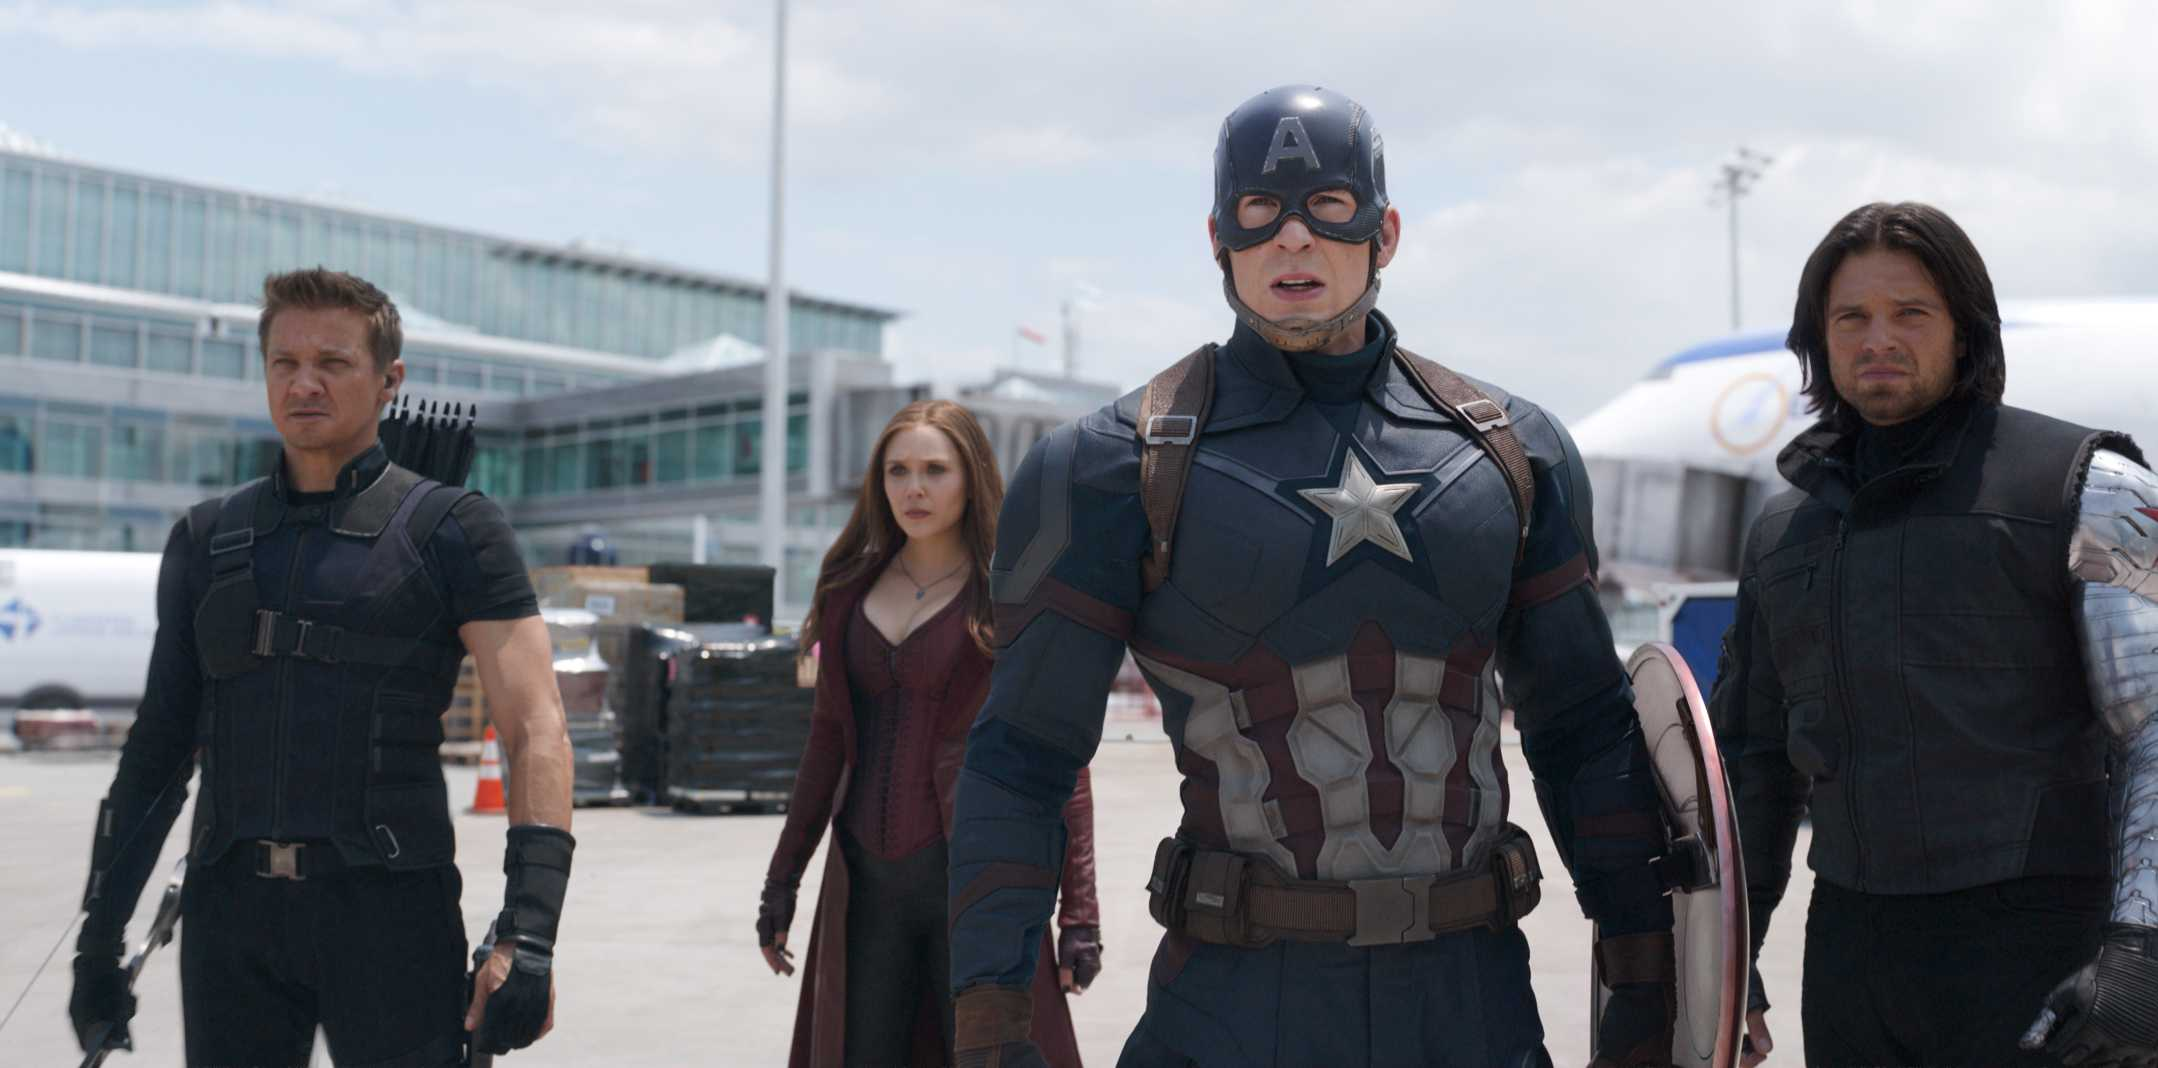 Still from Captain American: Civil War shows Hawkeye, Scarlet Witch, Captain America, and Bucky